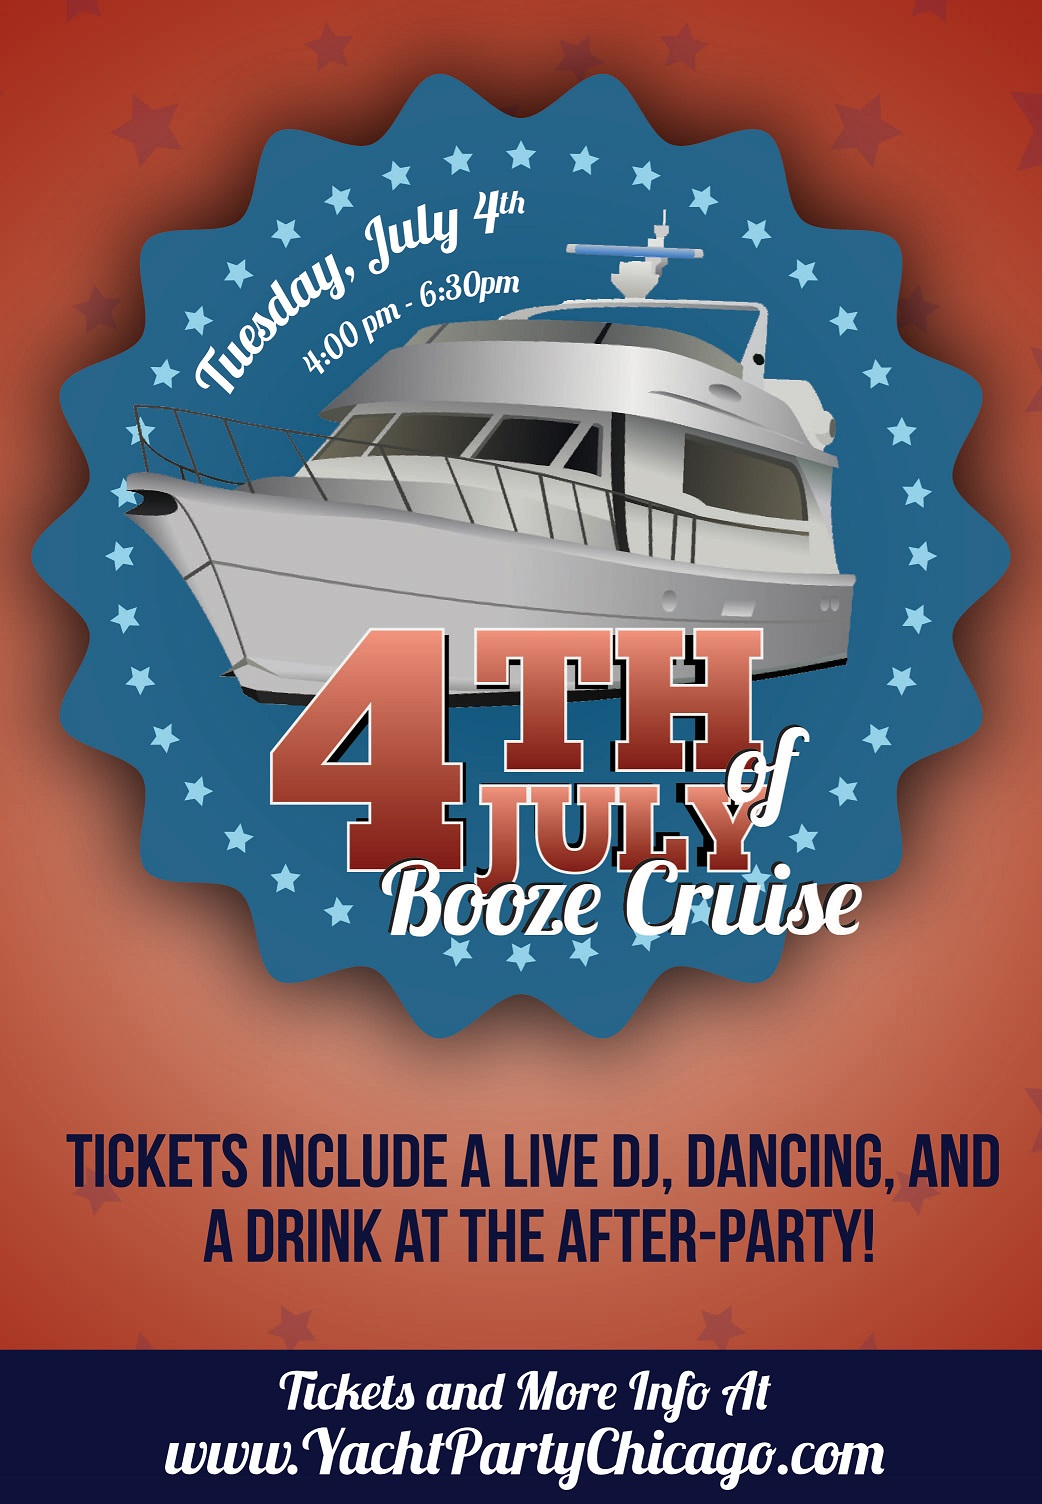 Independence Day - 4th of July Booze Cruise on Lake Michigan! Tickets include a Live DJ, Dancing, and A Drink At The After-Party! Catch breathtaking views of the skyline while aboard the booze cruise!